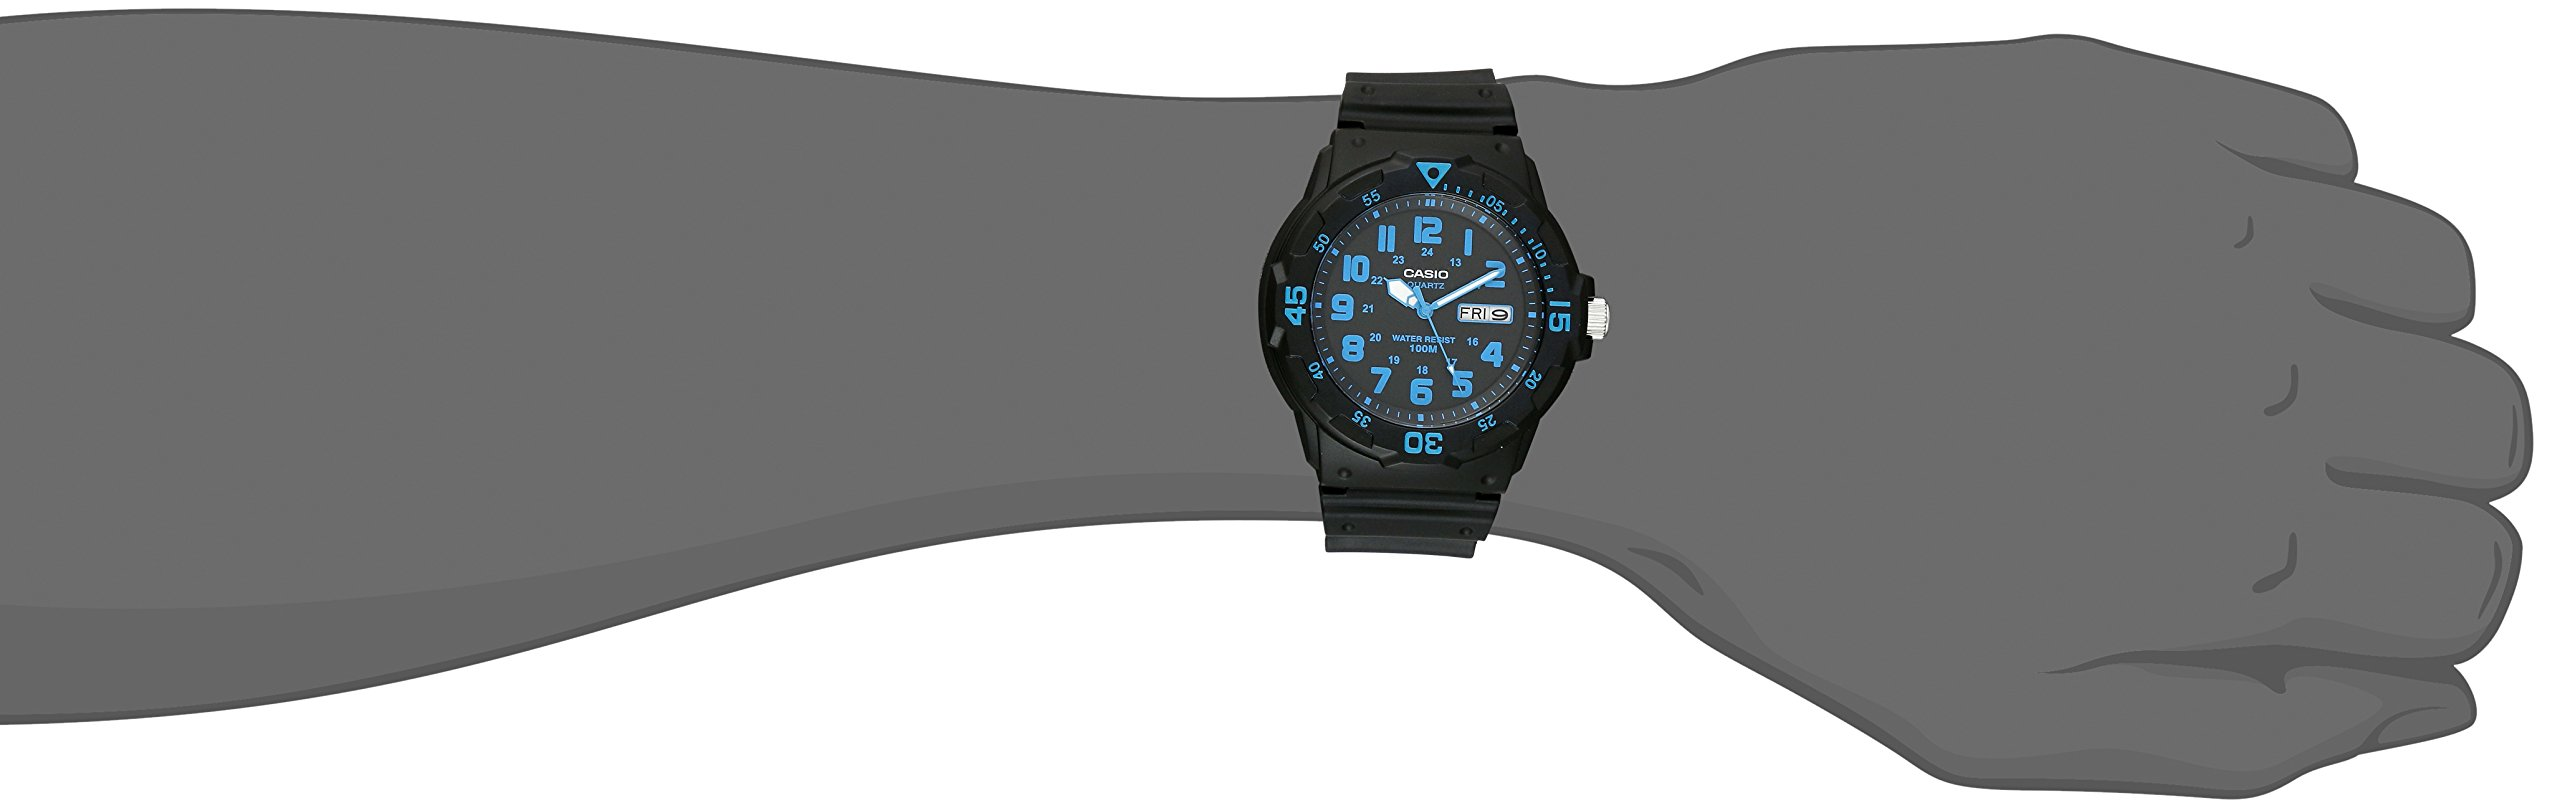 Casio Unisex MRW200H-2BV Neo-Display Black Watch with Resin Band by Casio (Image #2)